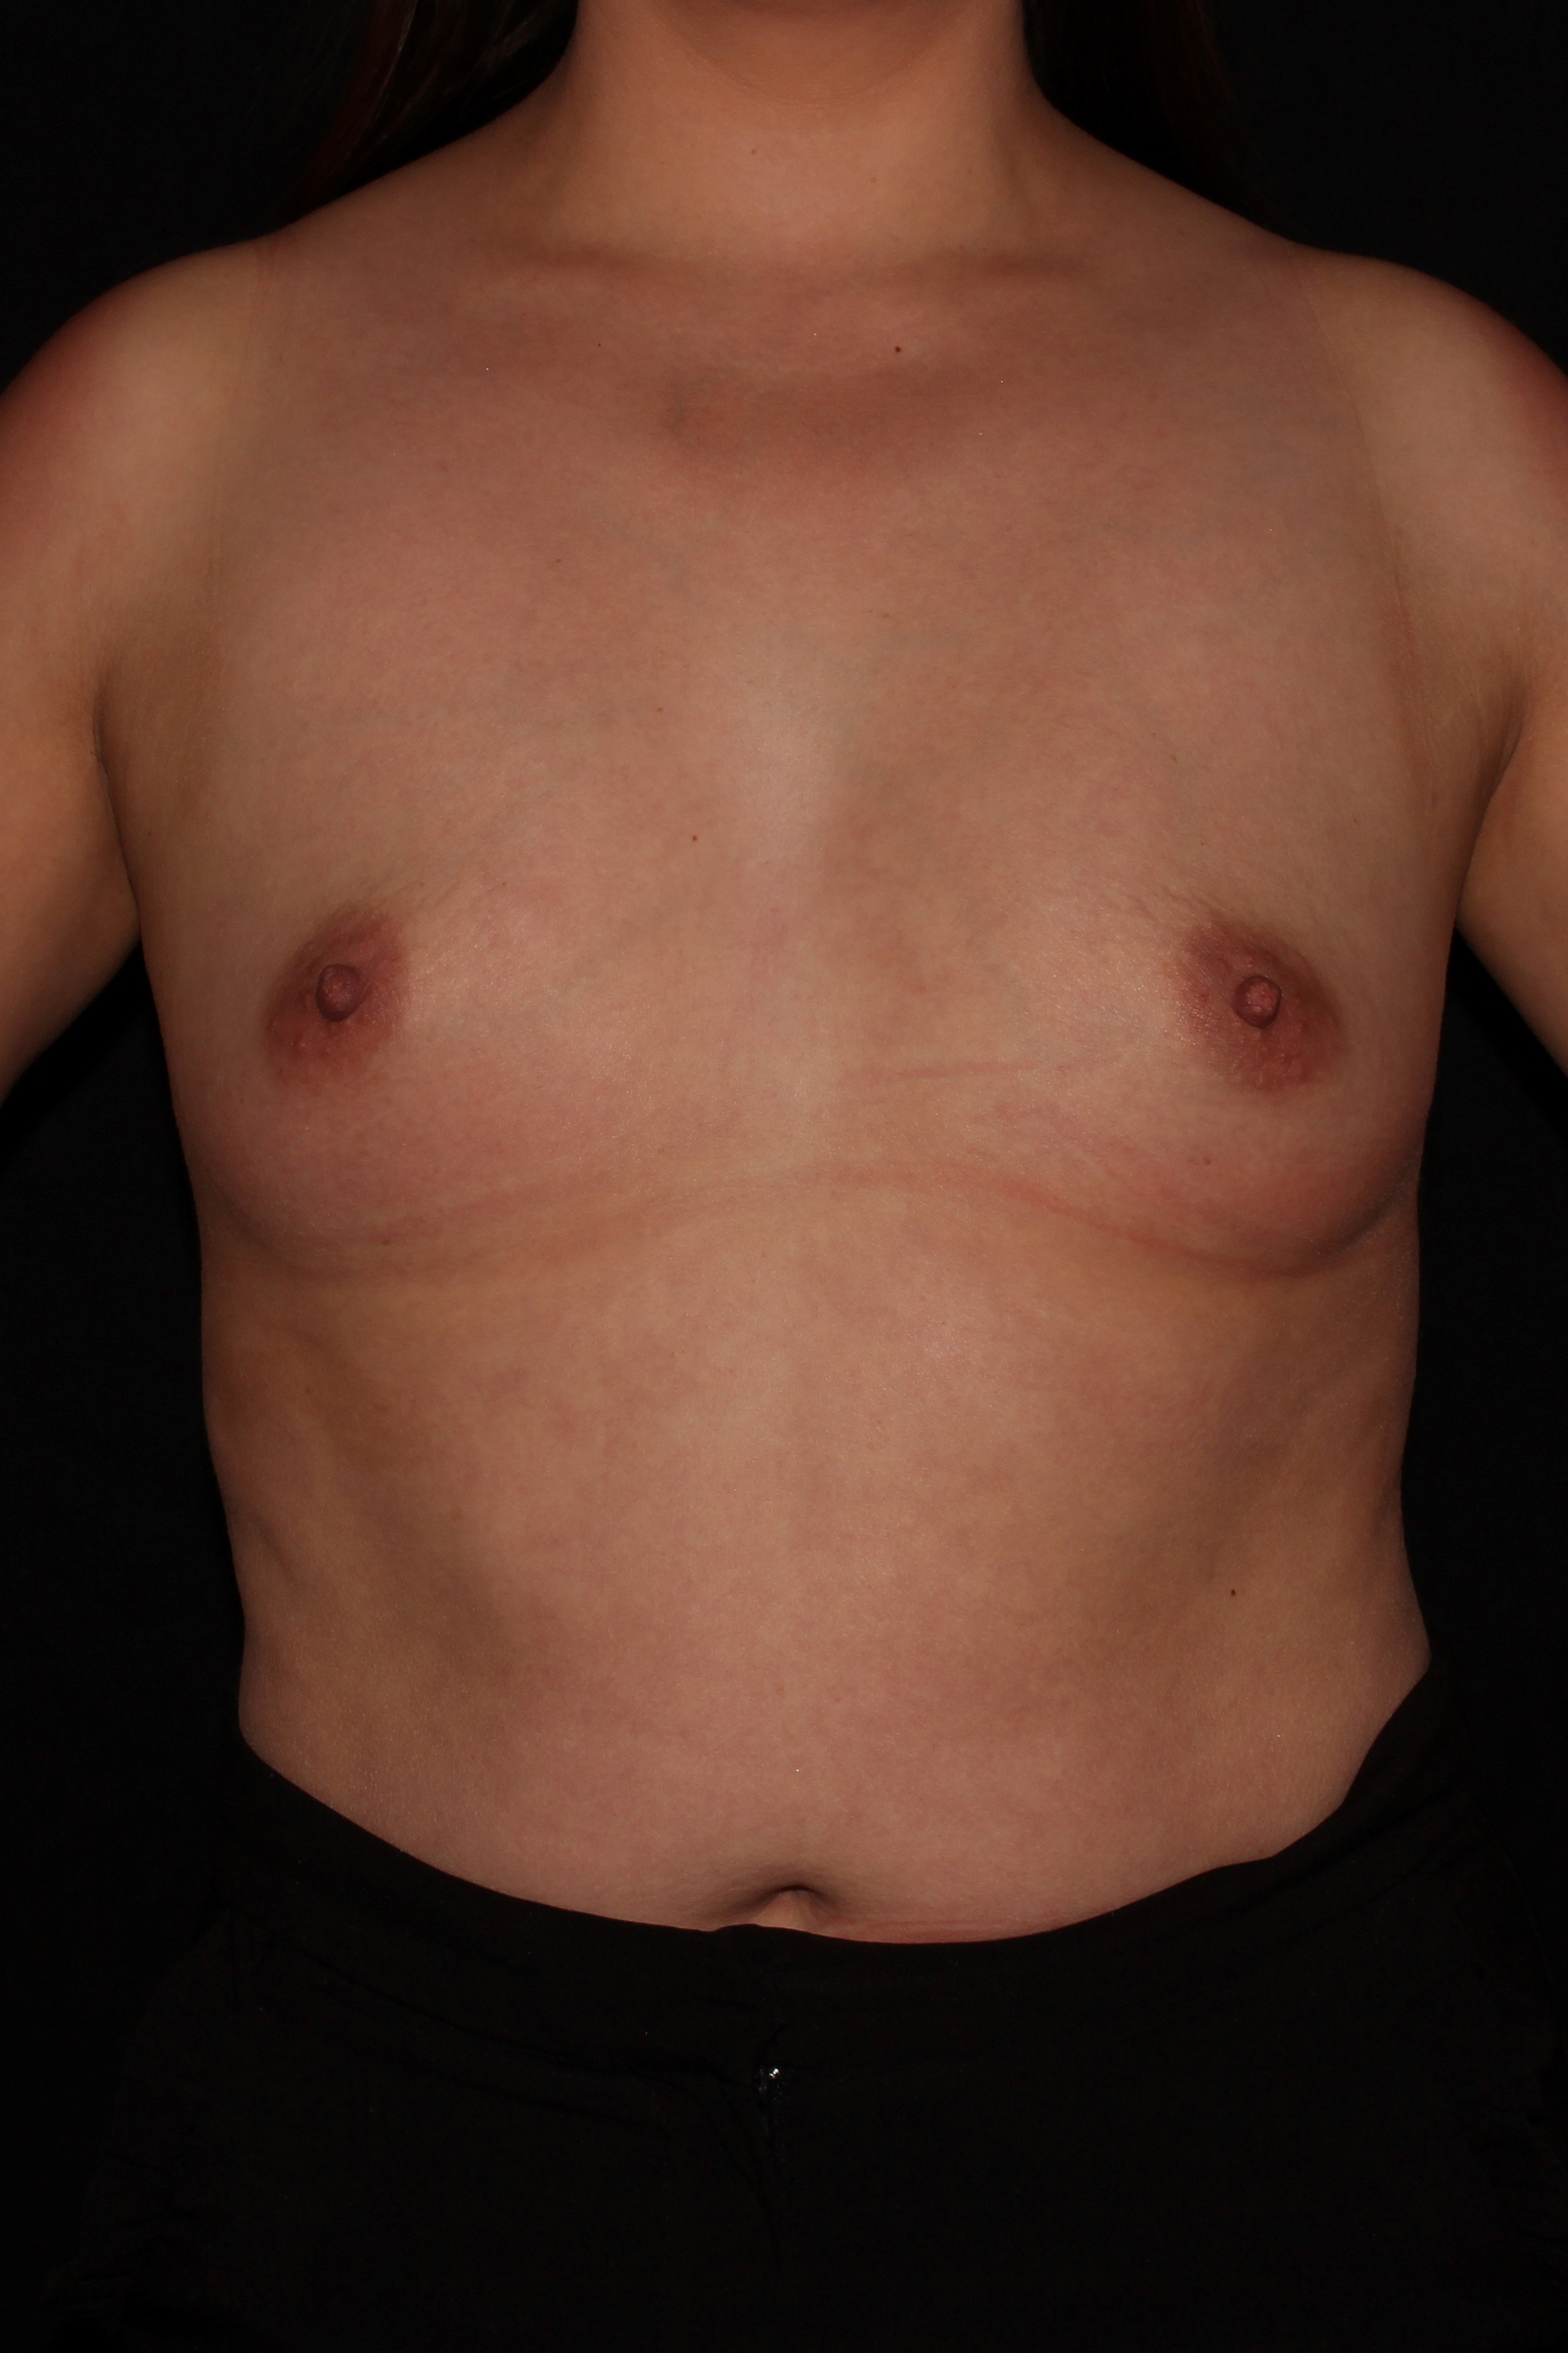 Before Breast Augmentation - 550cc high profile silicone implants